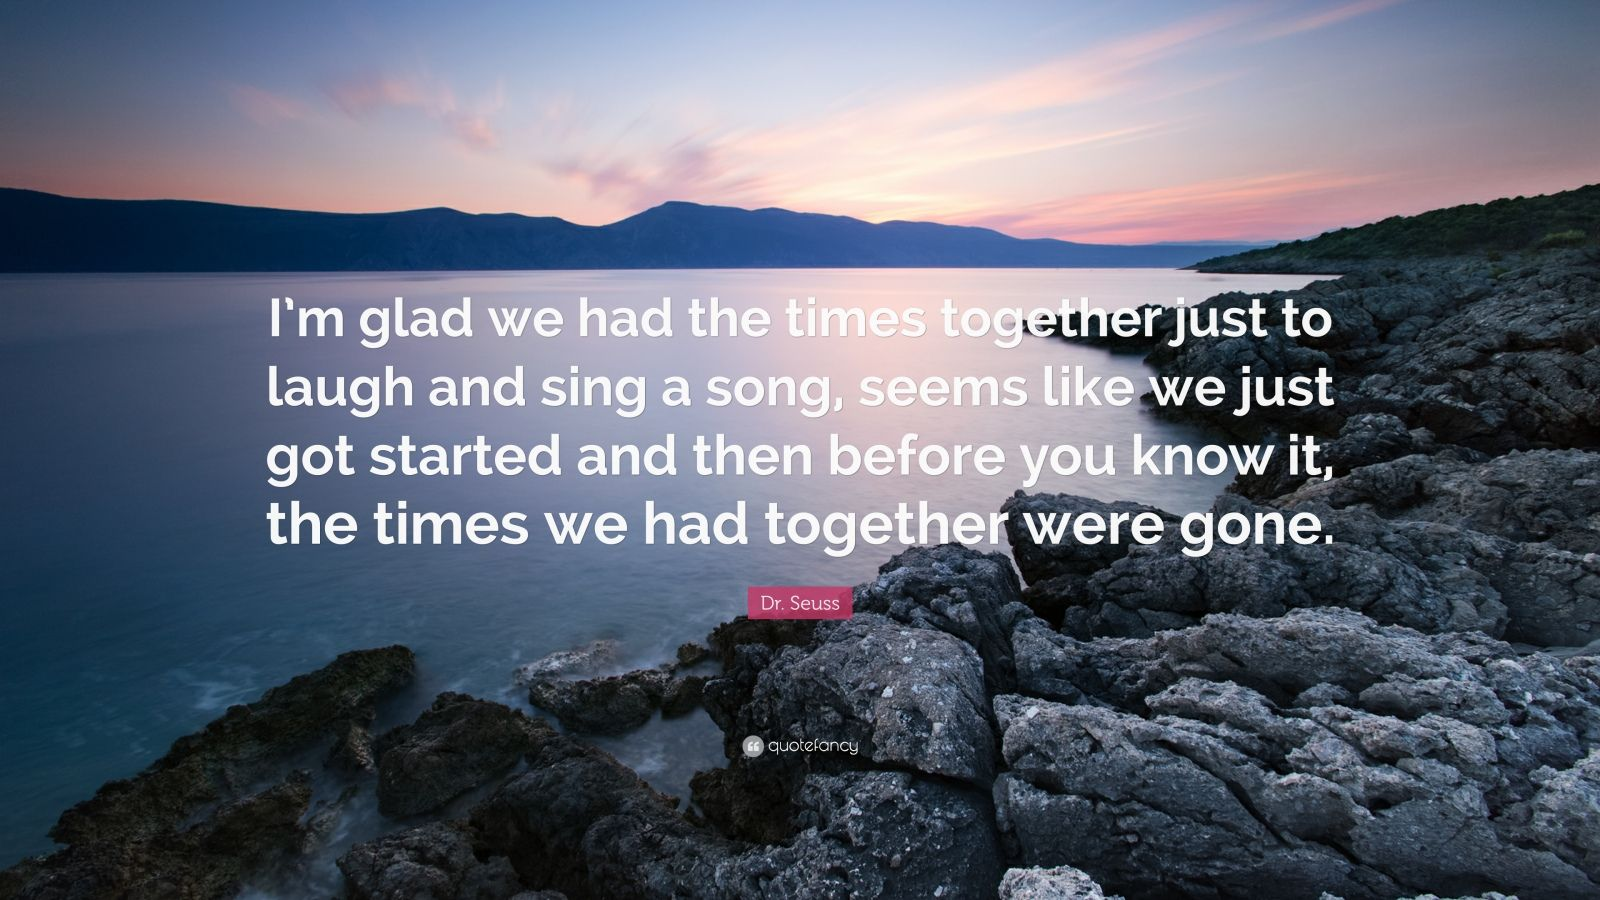 "Dr. Seuss Quote: ""I'm glad we had the times together just to laugh and sing a song, seems like we just got started and then before you know it, the times we had together were gone."""